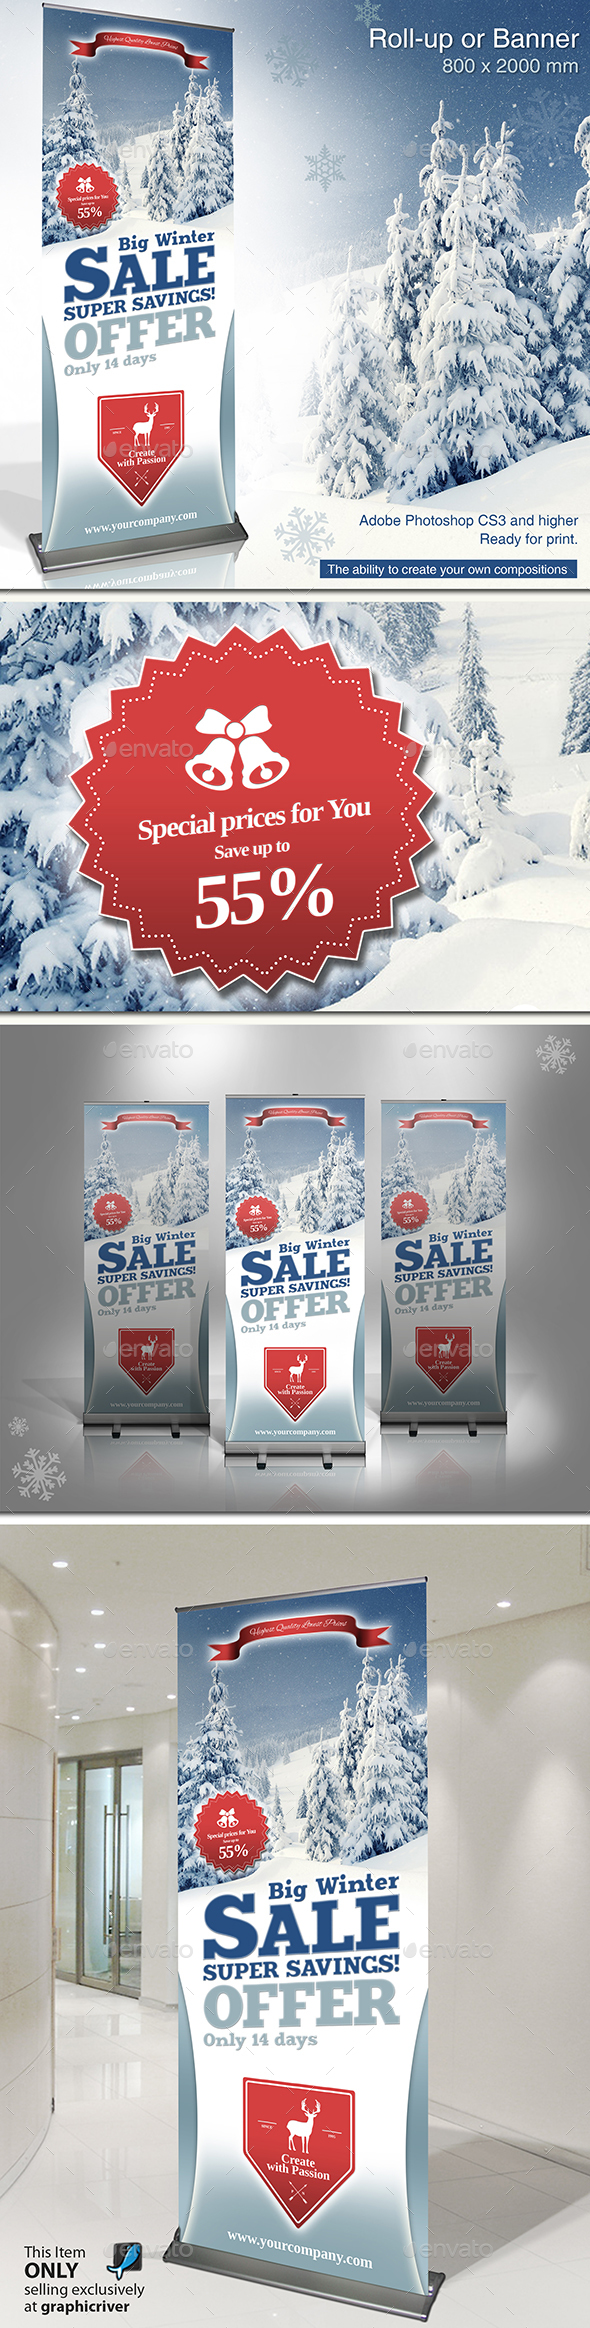 Winter Sale Roll Up Banner - Signage Print Templates